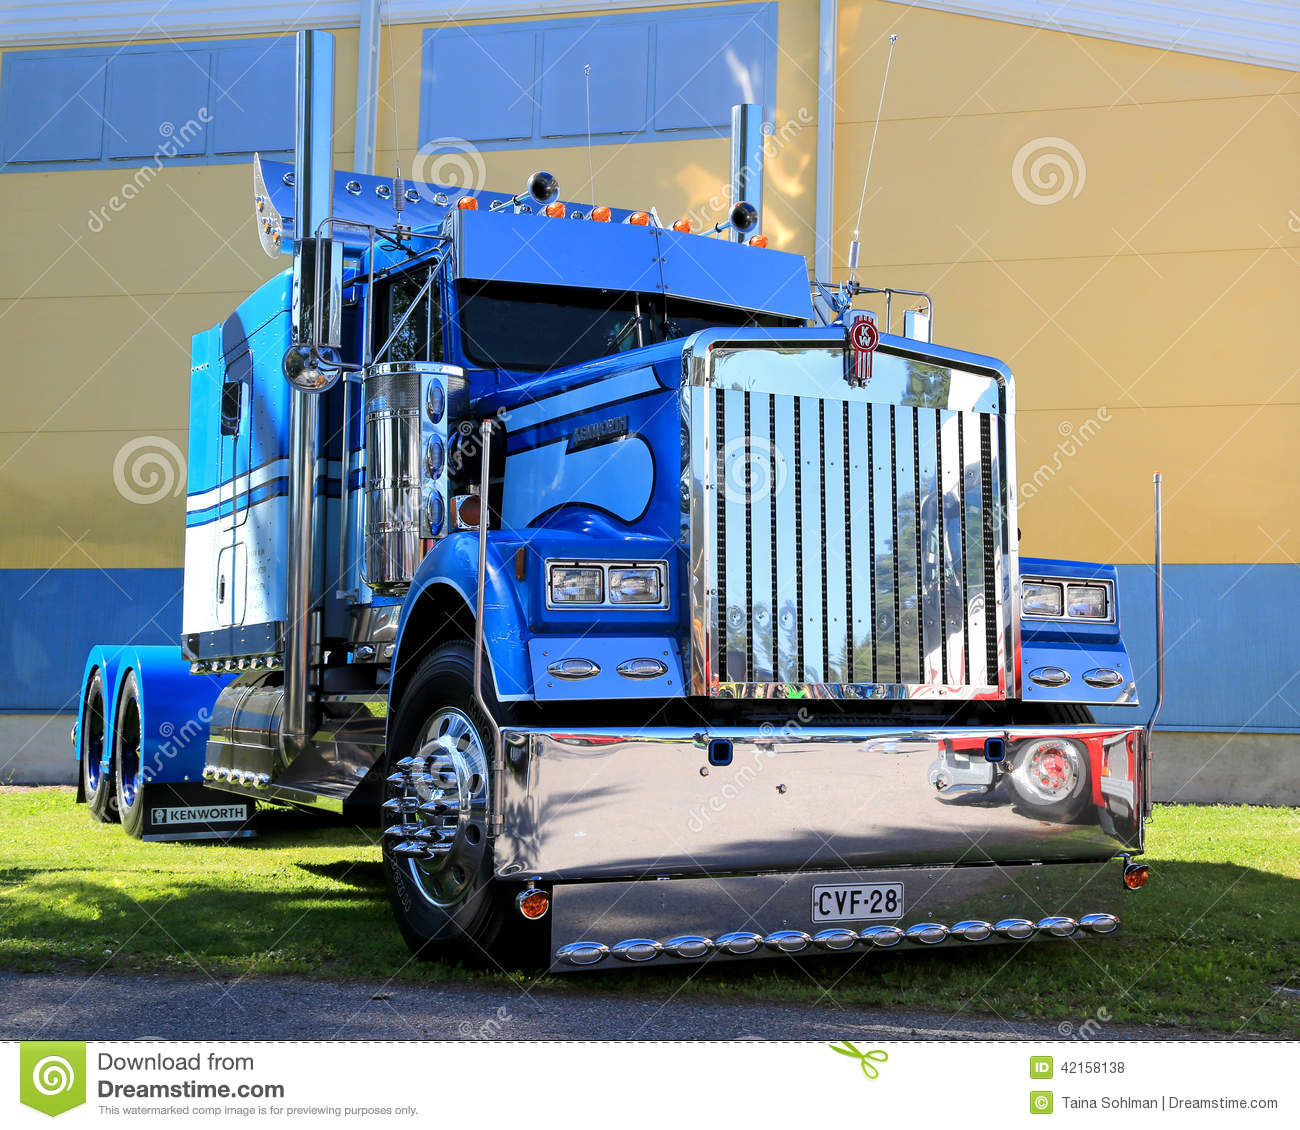 Watch additionally Photo Stock  C3 A9ditorial Tracteur Bleu De Camion D Exposition De Kenworth Image42158138 likewise Gardengrove furthermore Bsm Truck 850 Hook V1 0 0 0 Fs17 as well Scania R560 Donslund. on kenworth truck and trailer